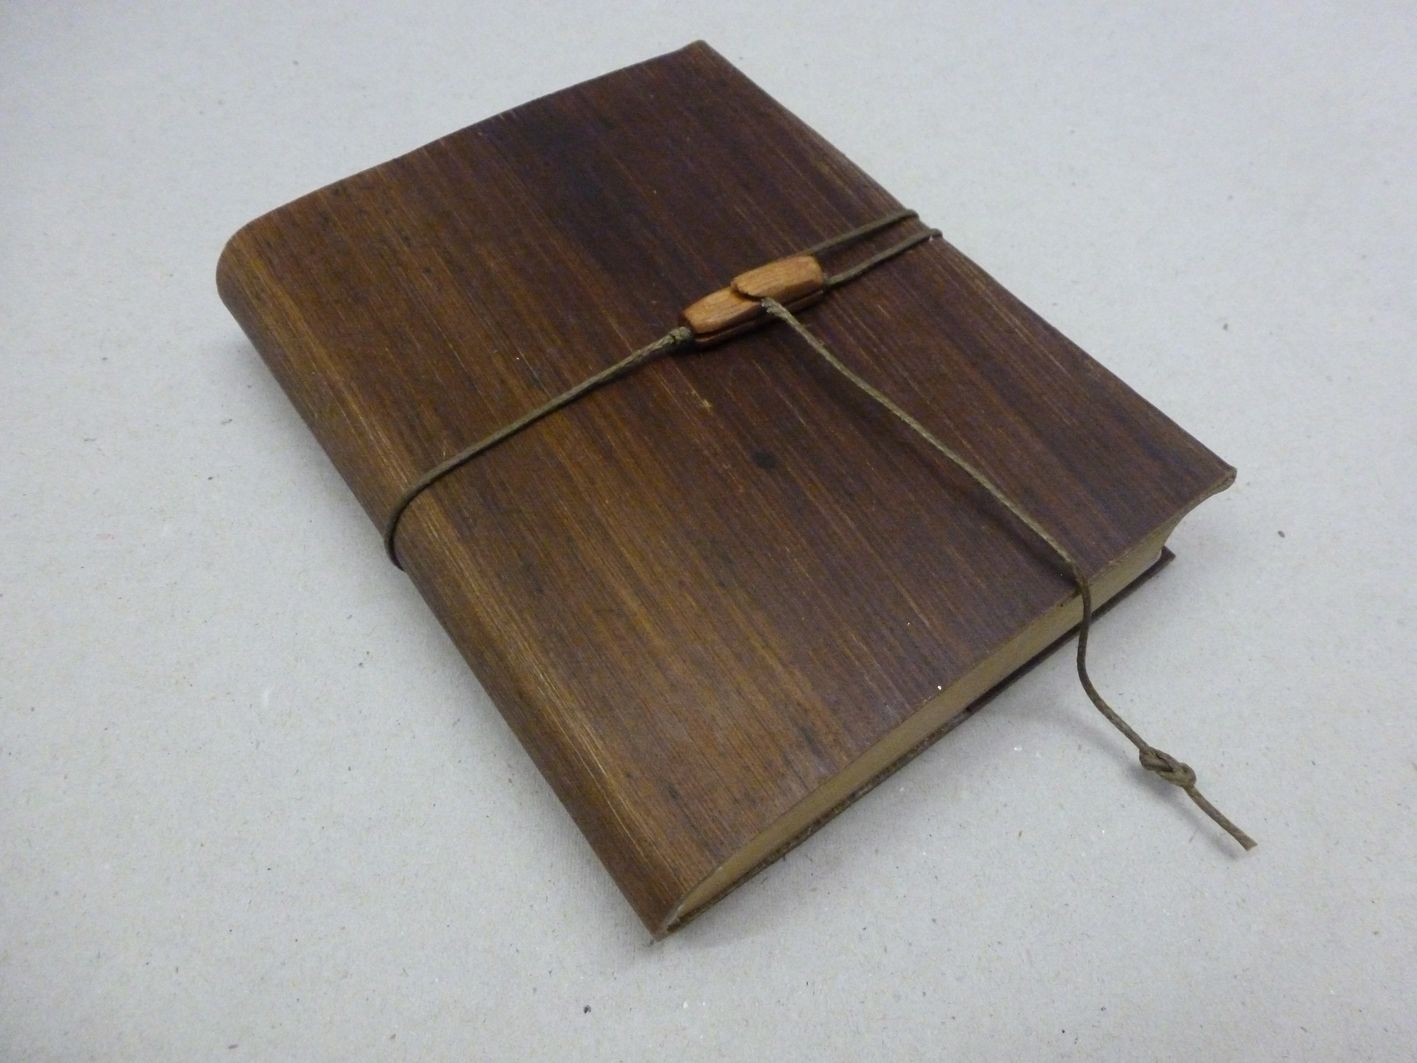 Leather Book Cover Material : Palm leather · book cover by studio tjeerd veenhoven